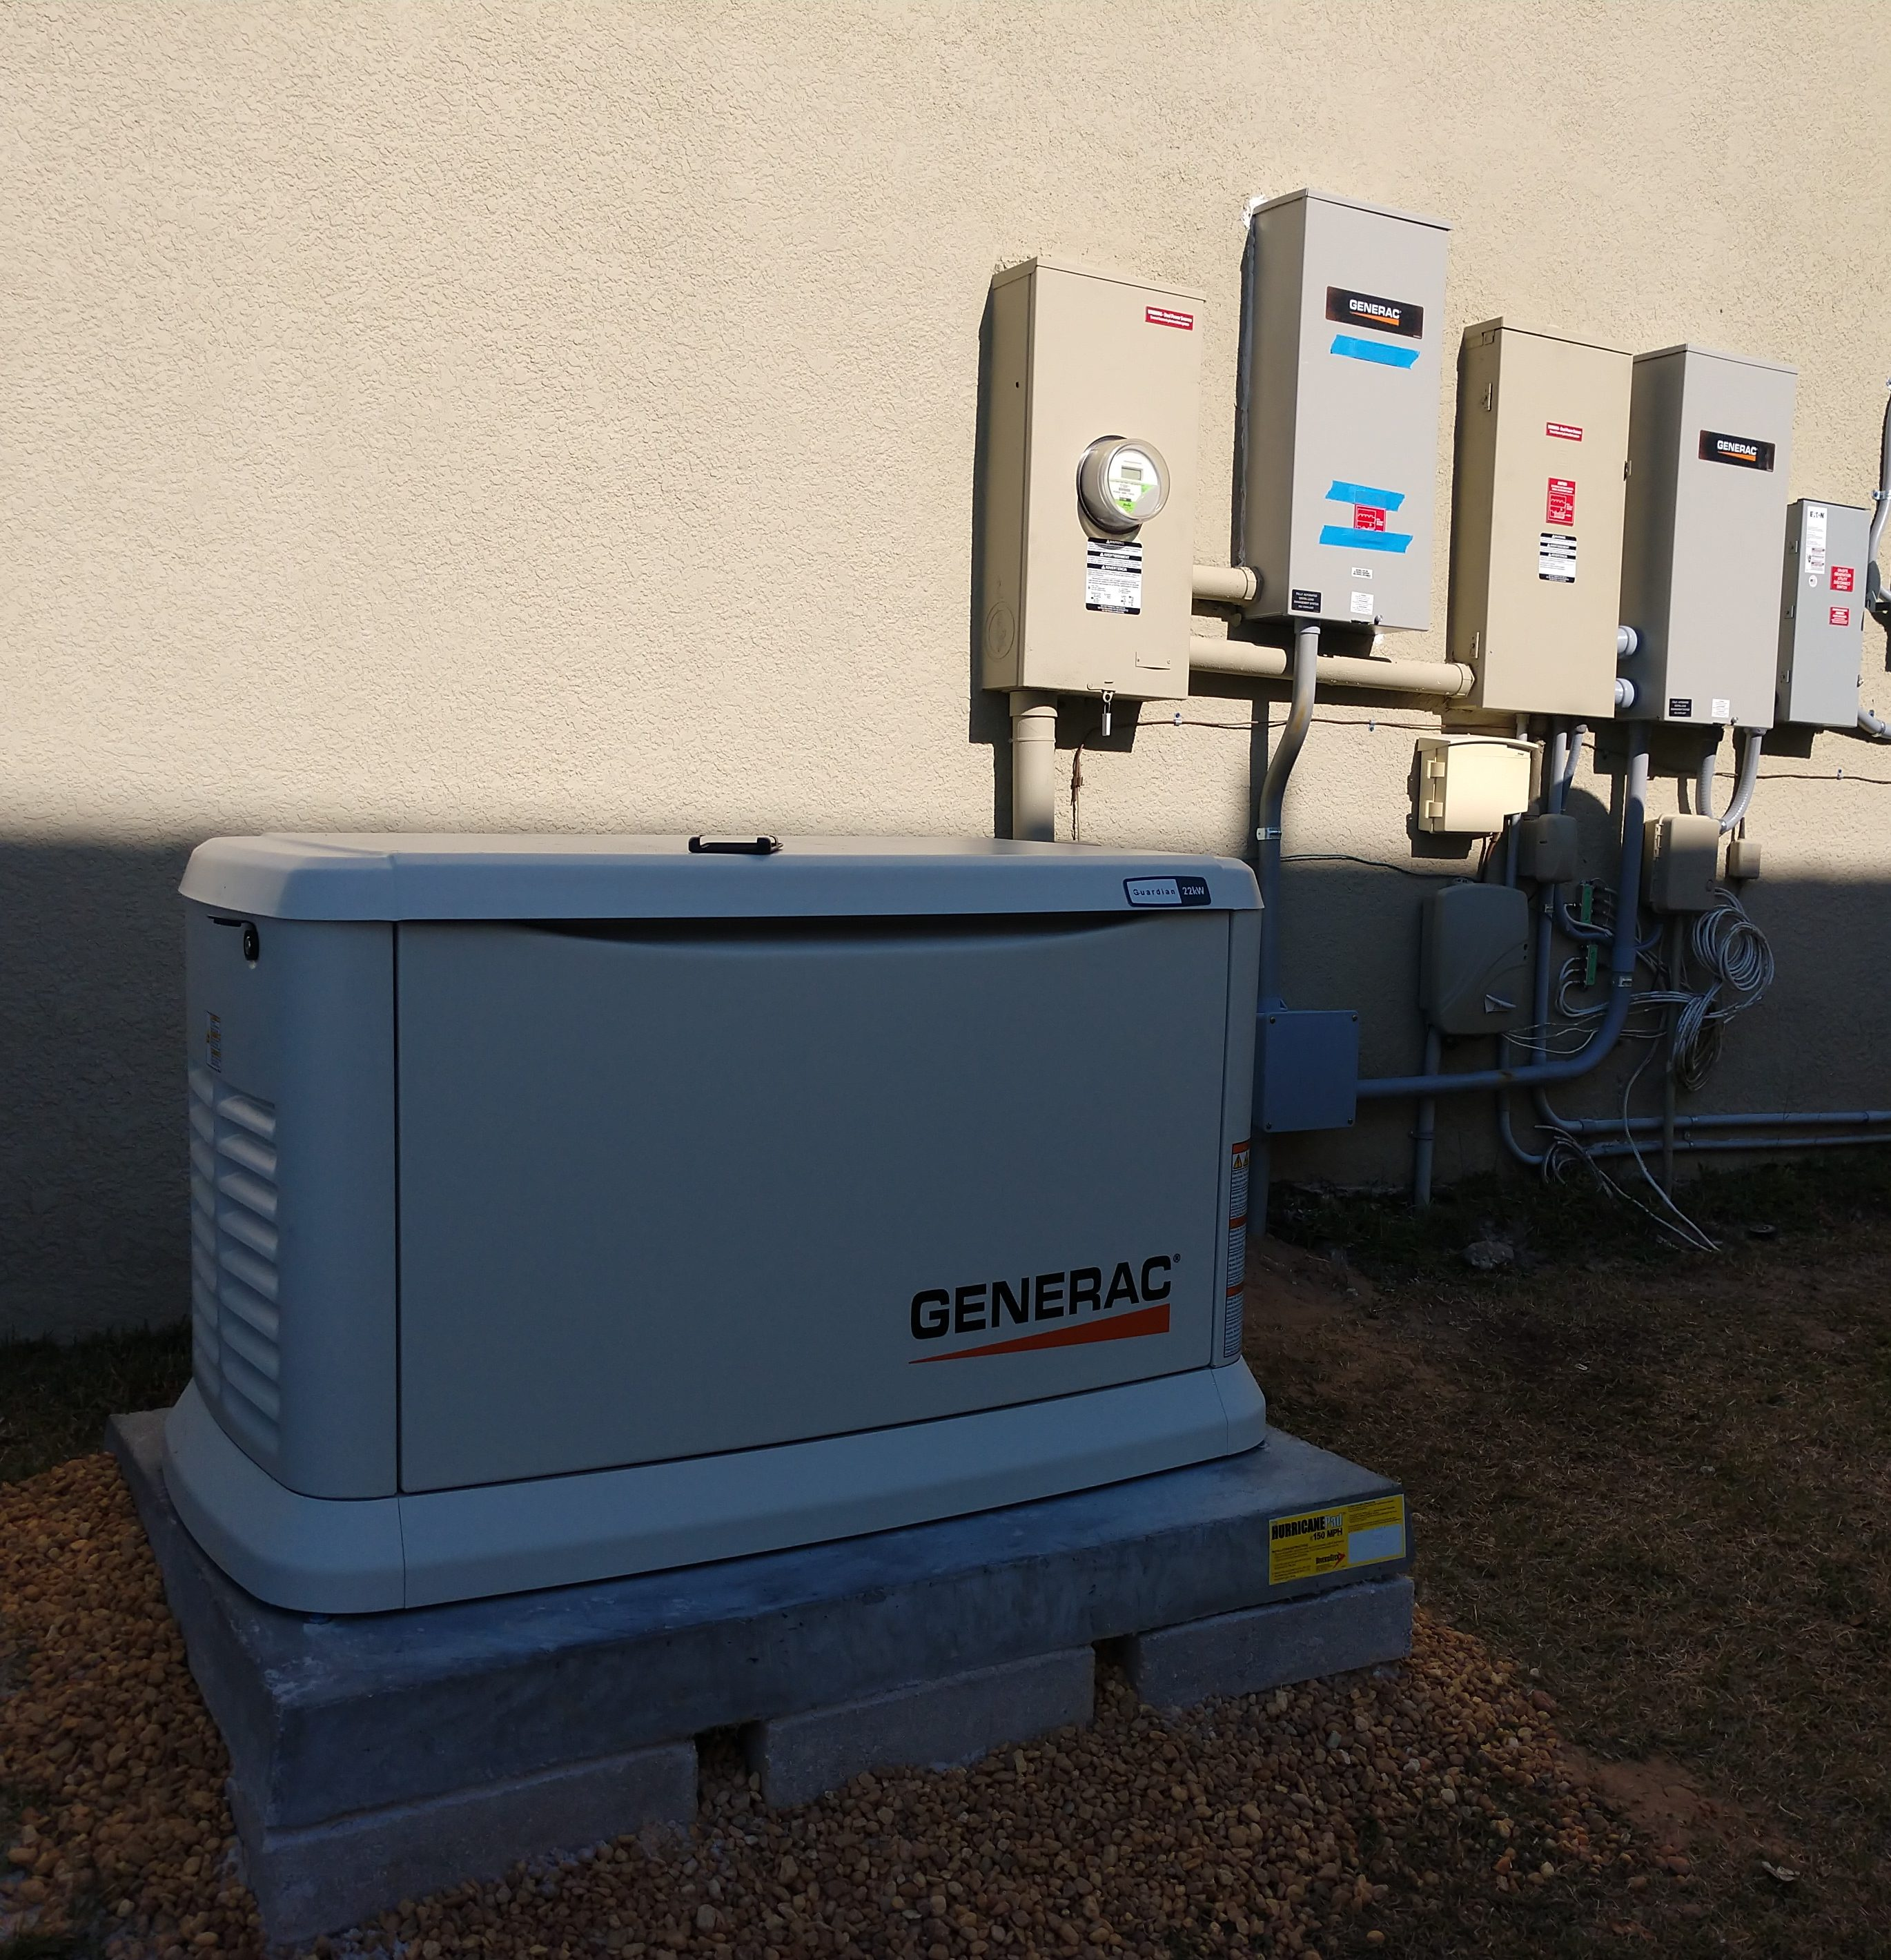 Generac Generator installed by Airprompt electric